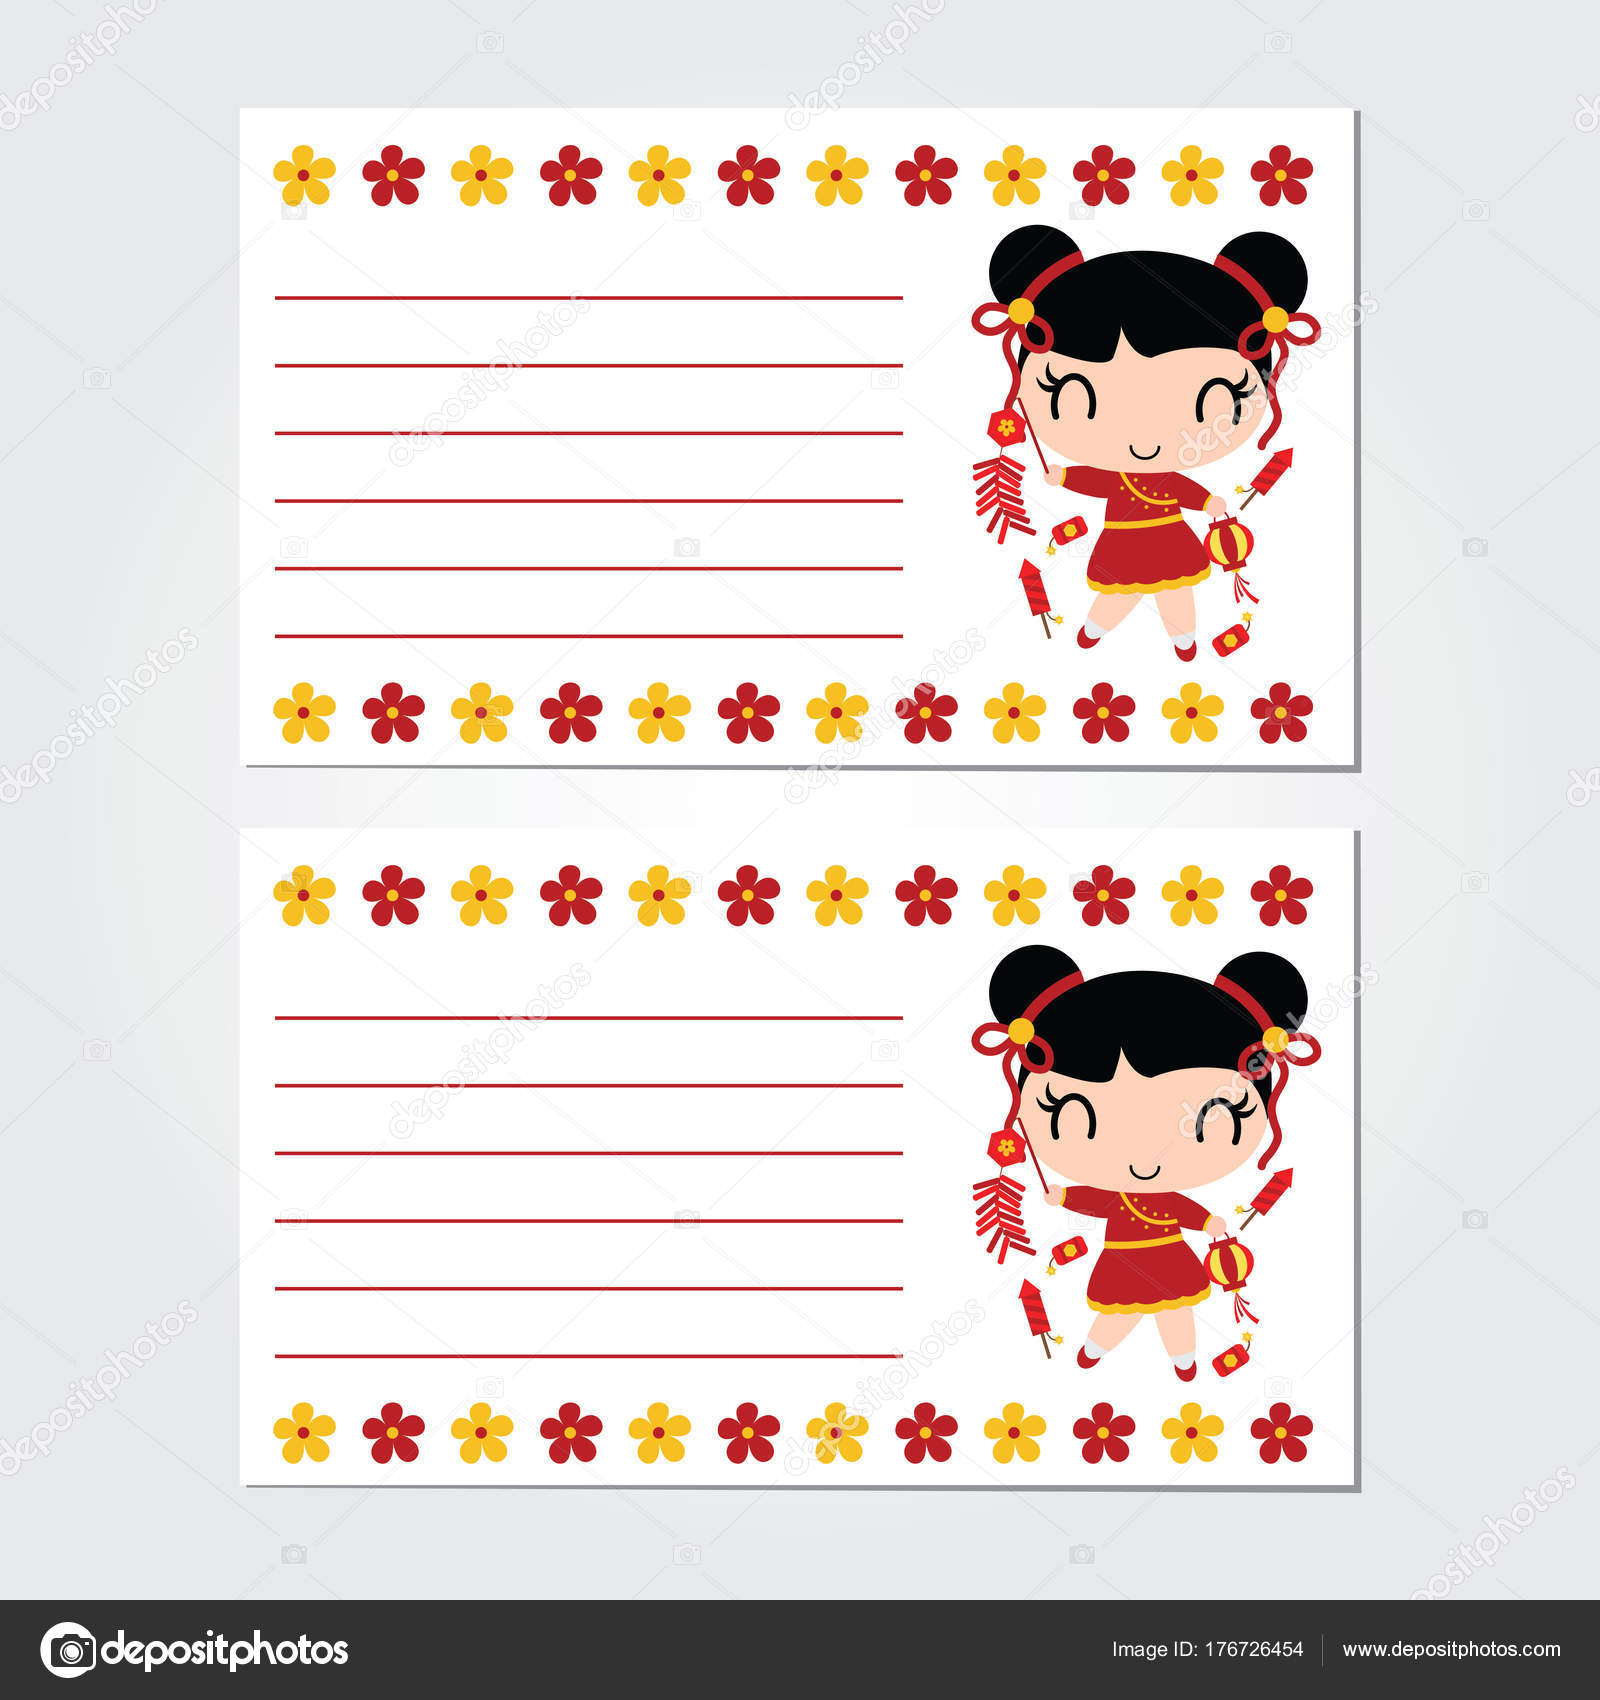 cute chinese girl plays firecrackers with flowers border vector cartoon illustration for chinese new year card design postcard and wallpaper vector by